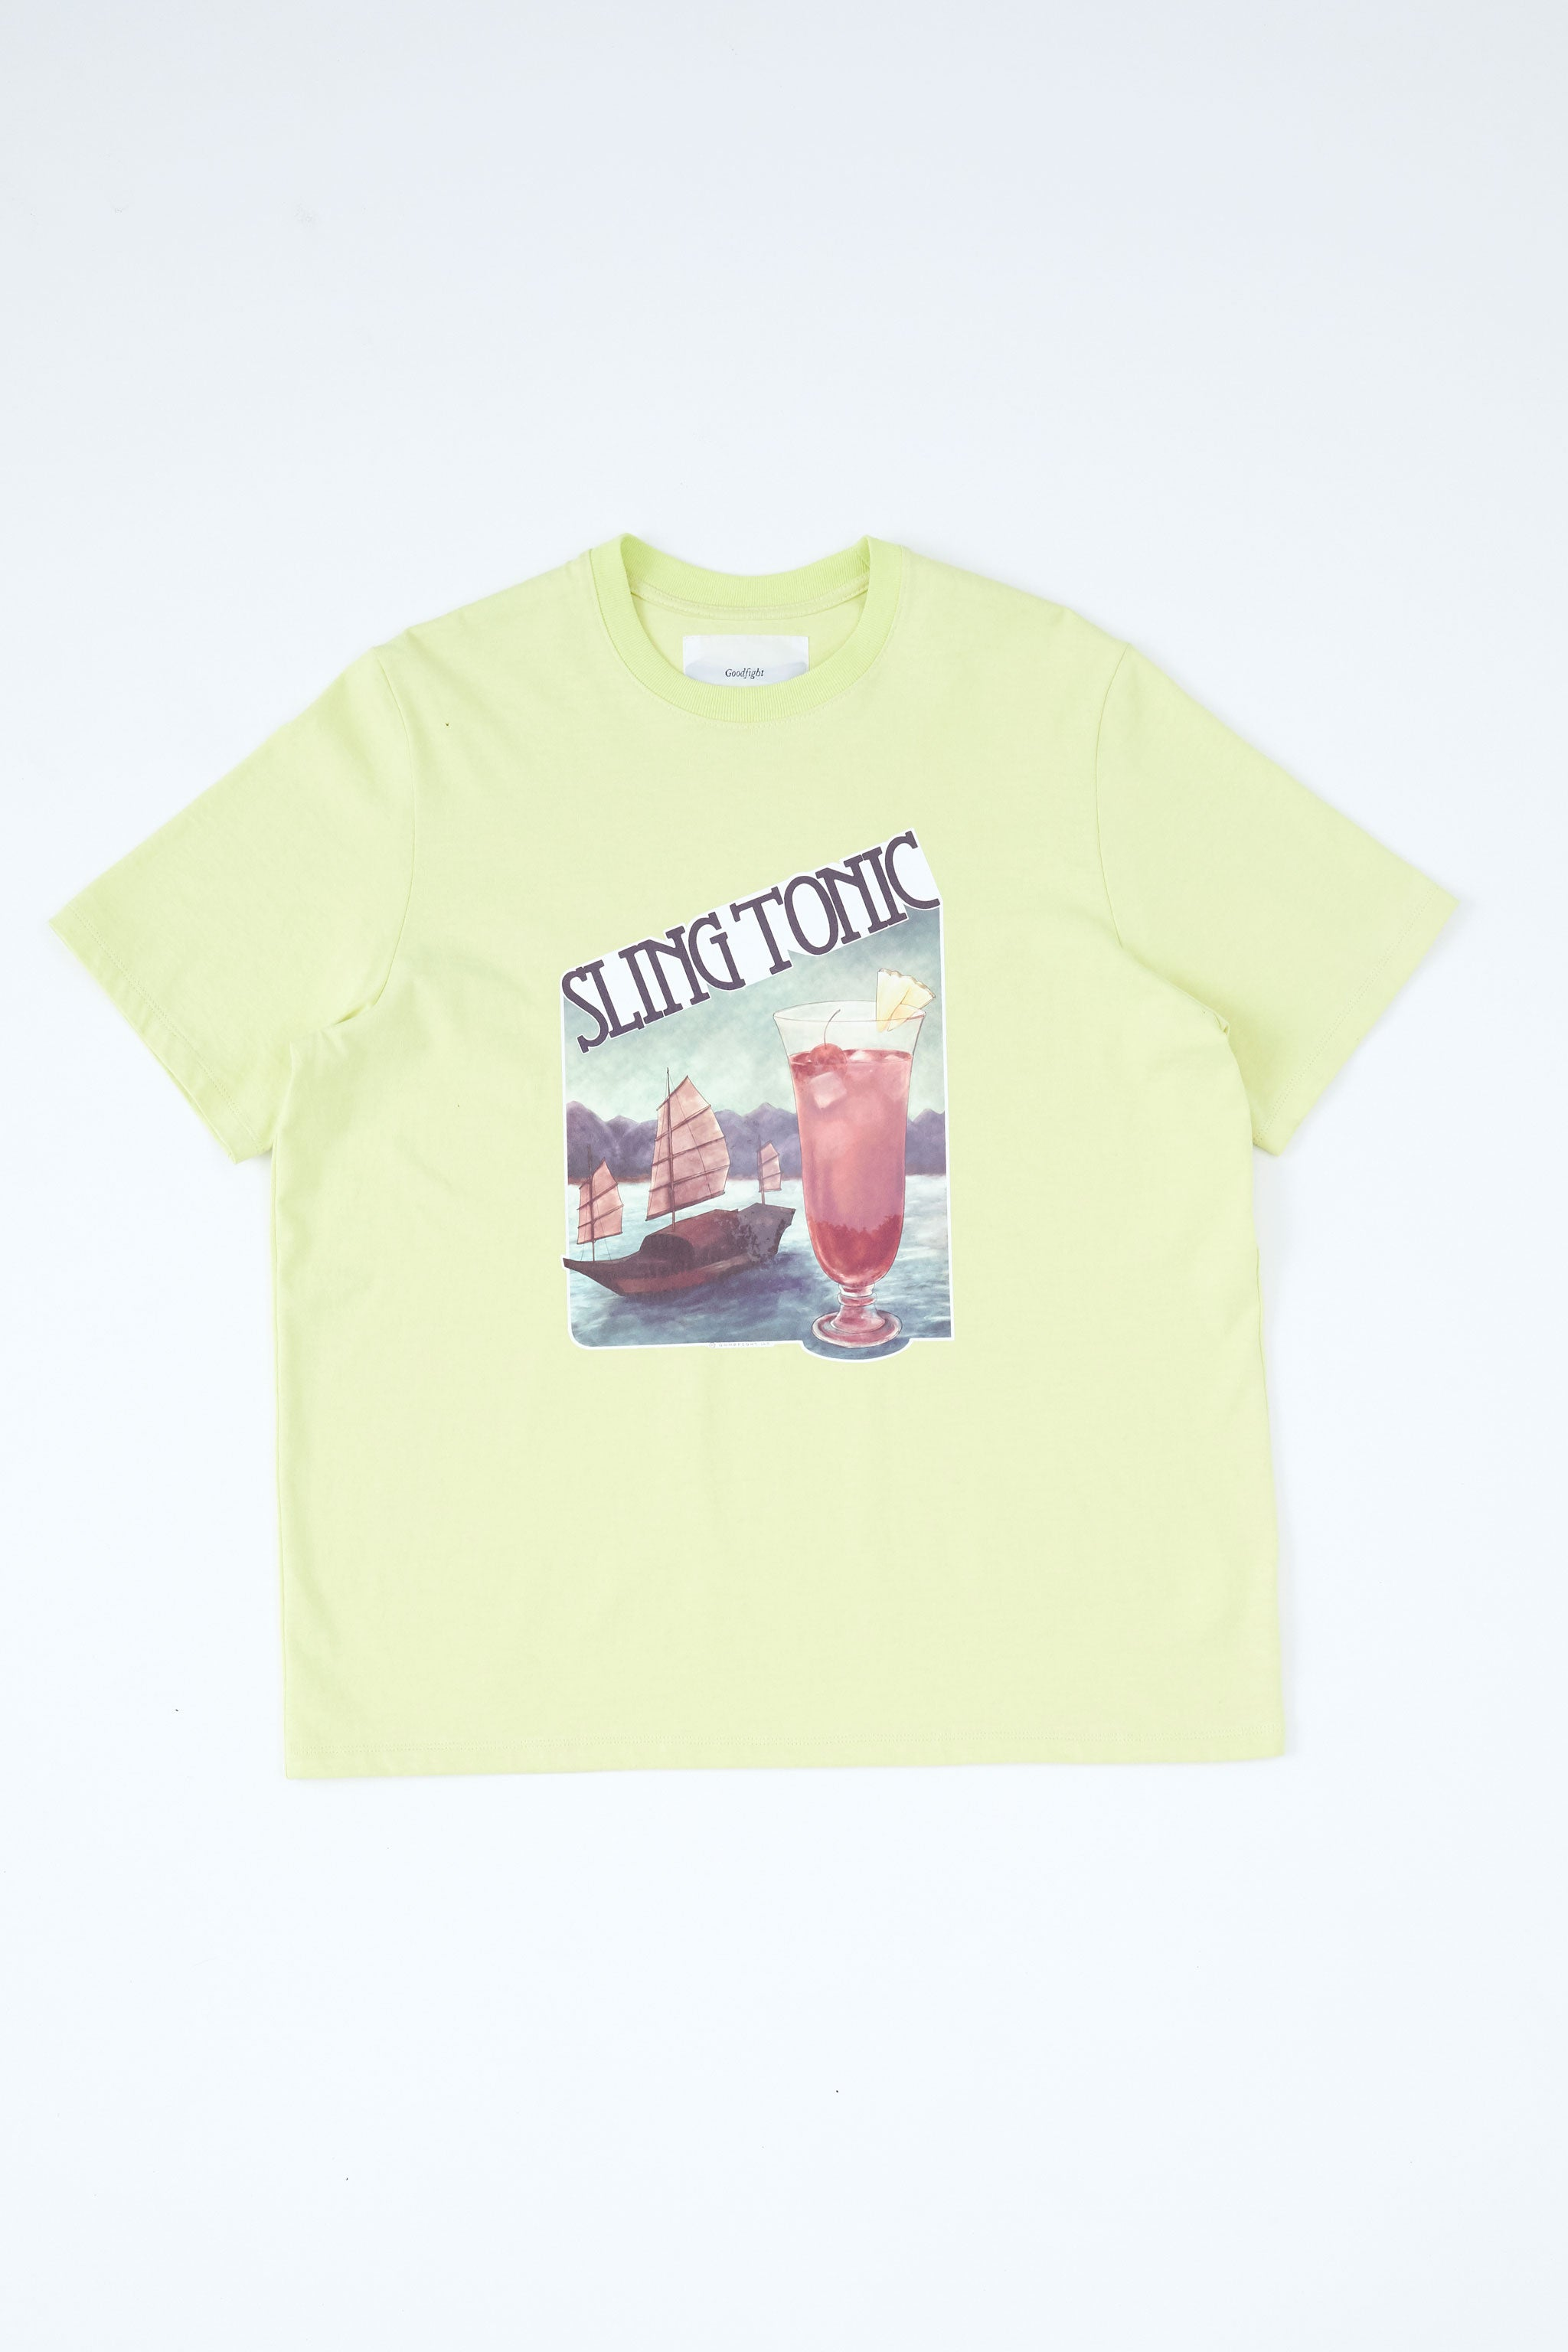 Goodfight Sling Tonic Tee